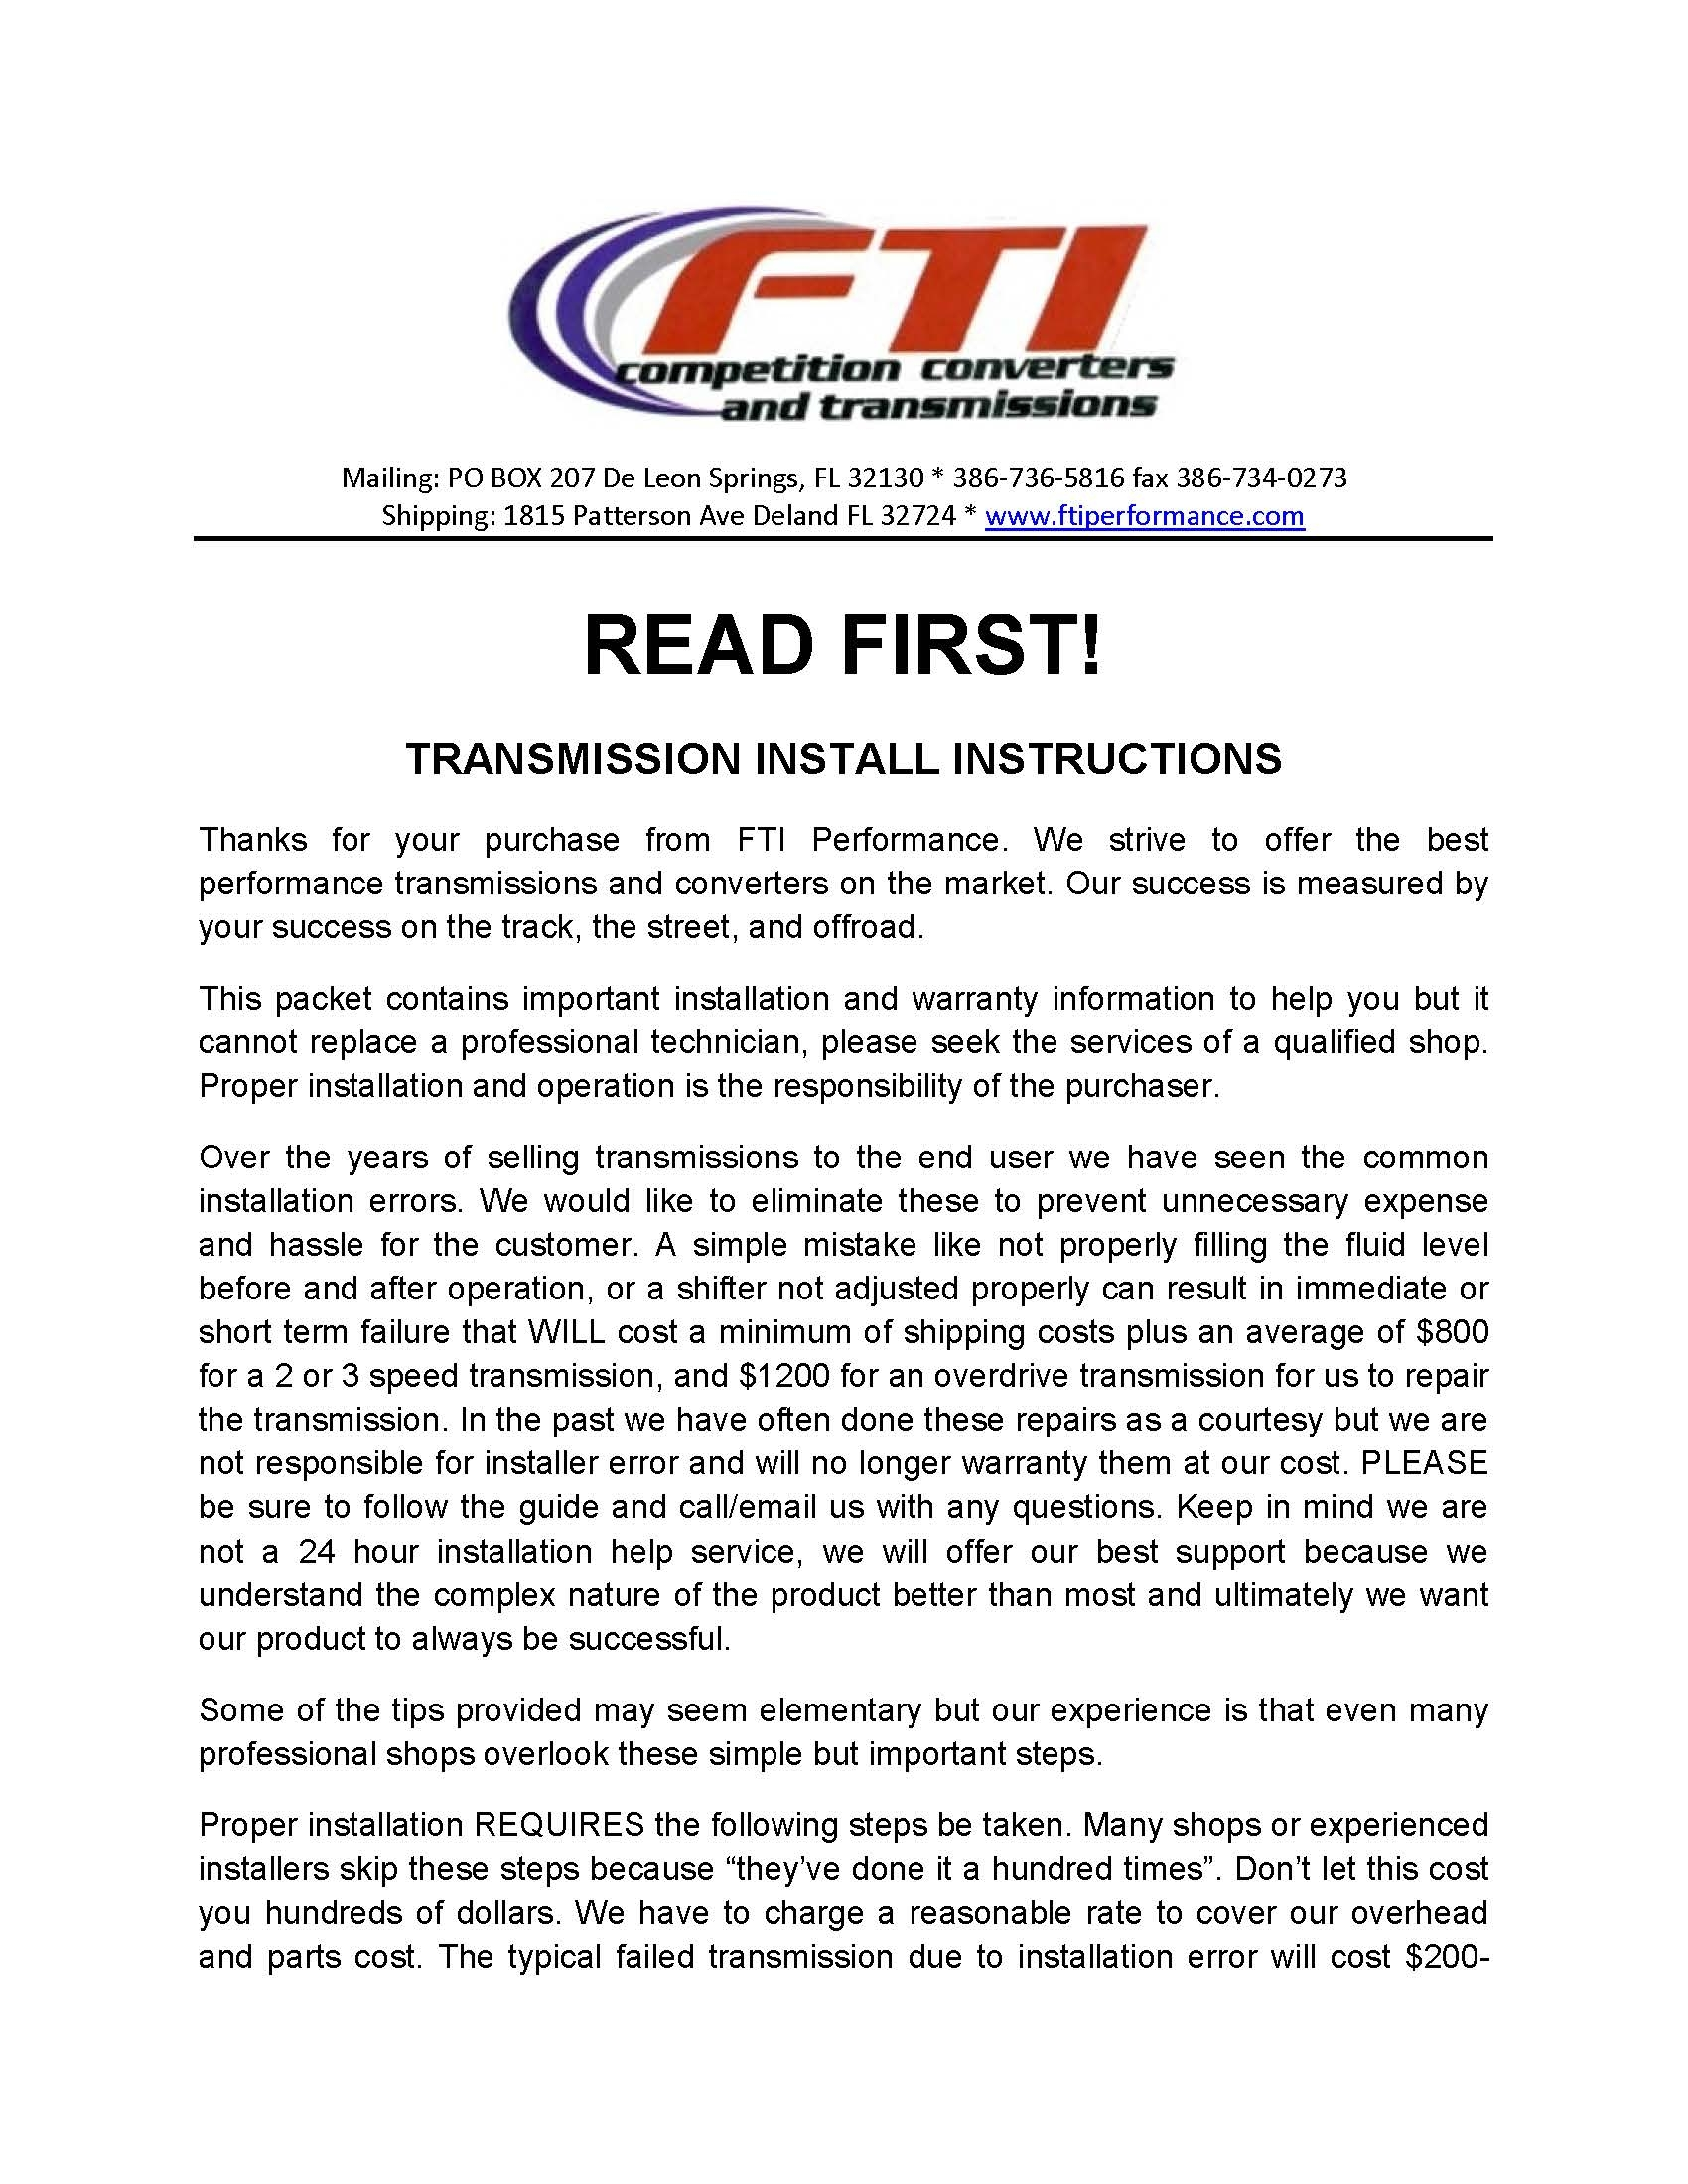 Fti Transmission Installation Instructions Powerglide Th400